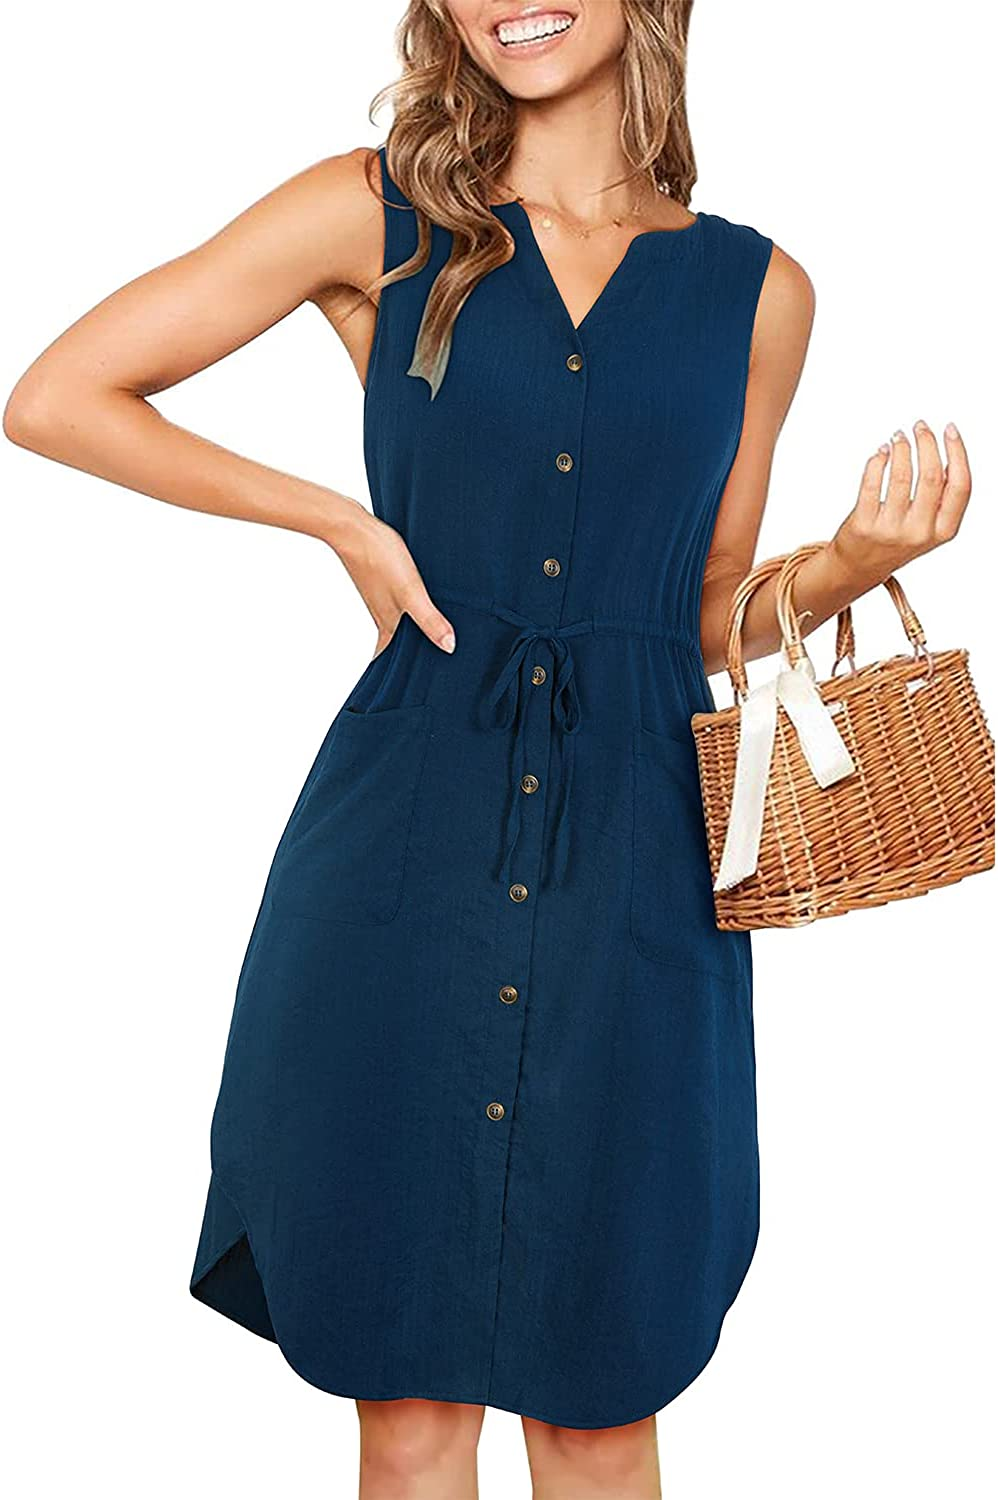 KILIG Women's Summer V Neck Sleeveless Button Down Elastic Casual Dress with Pockets